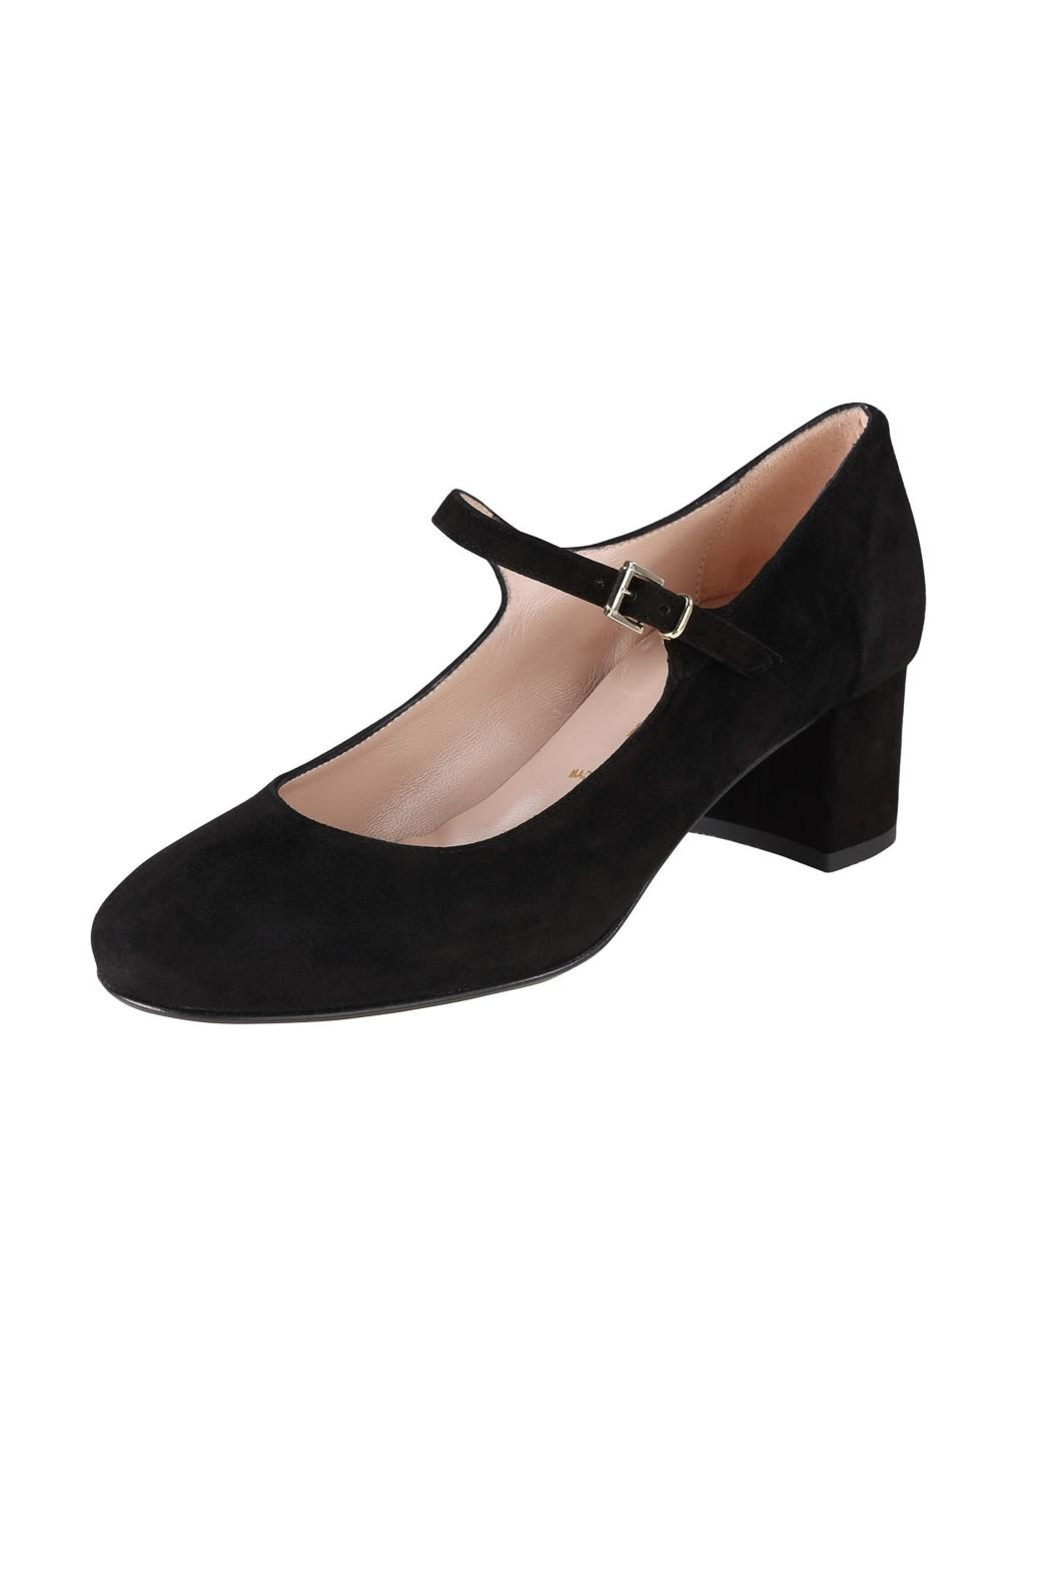 Pascucci Black Suede Mary-Janes - Front Full Image